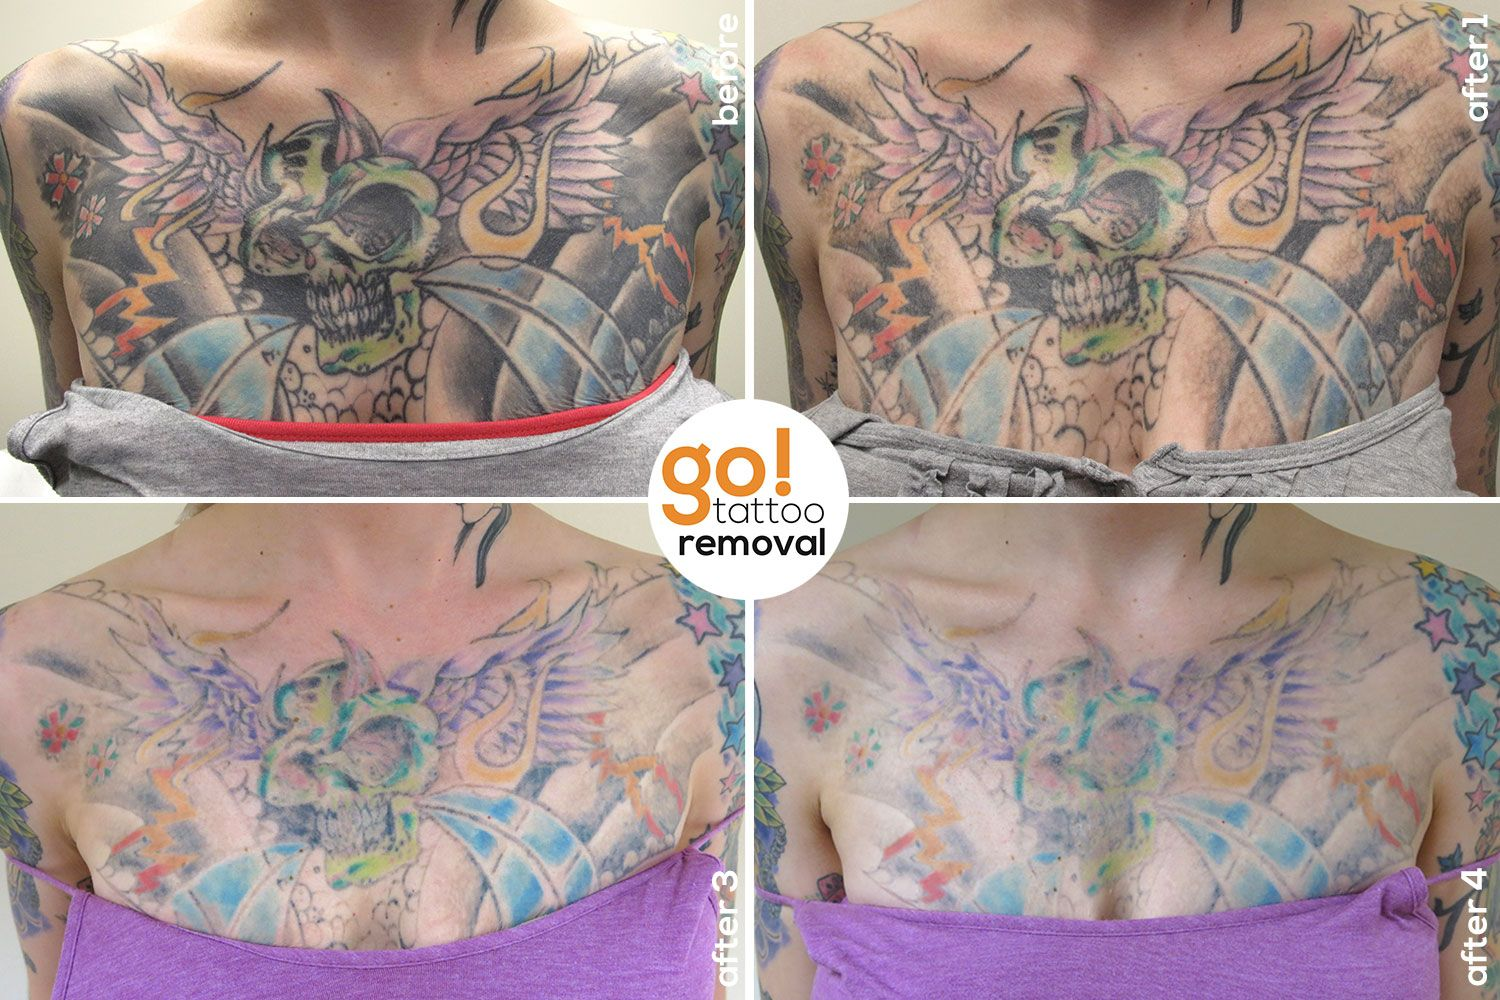 This Large And Heavy Chest Piece Isn T What The Client Wanted For The Rest Of Their Life So A Little Over A Ye Chest Tattoo Removal Tattoo Removal Chest Piece